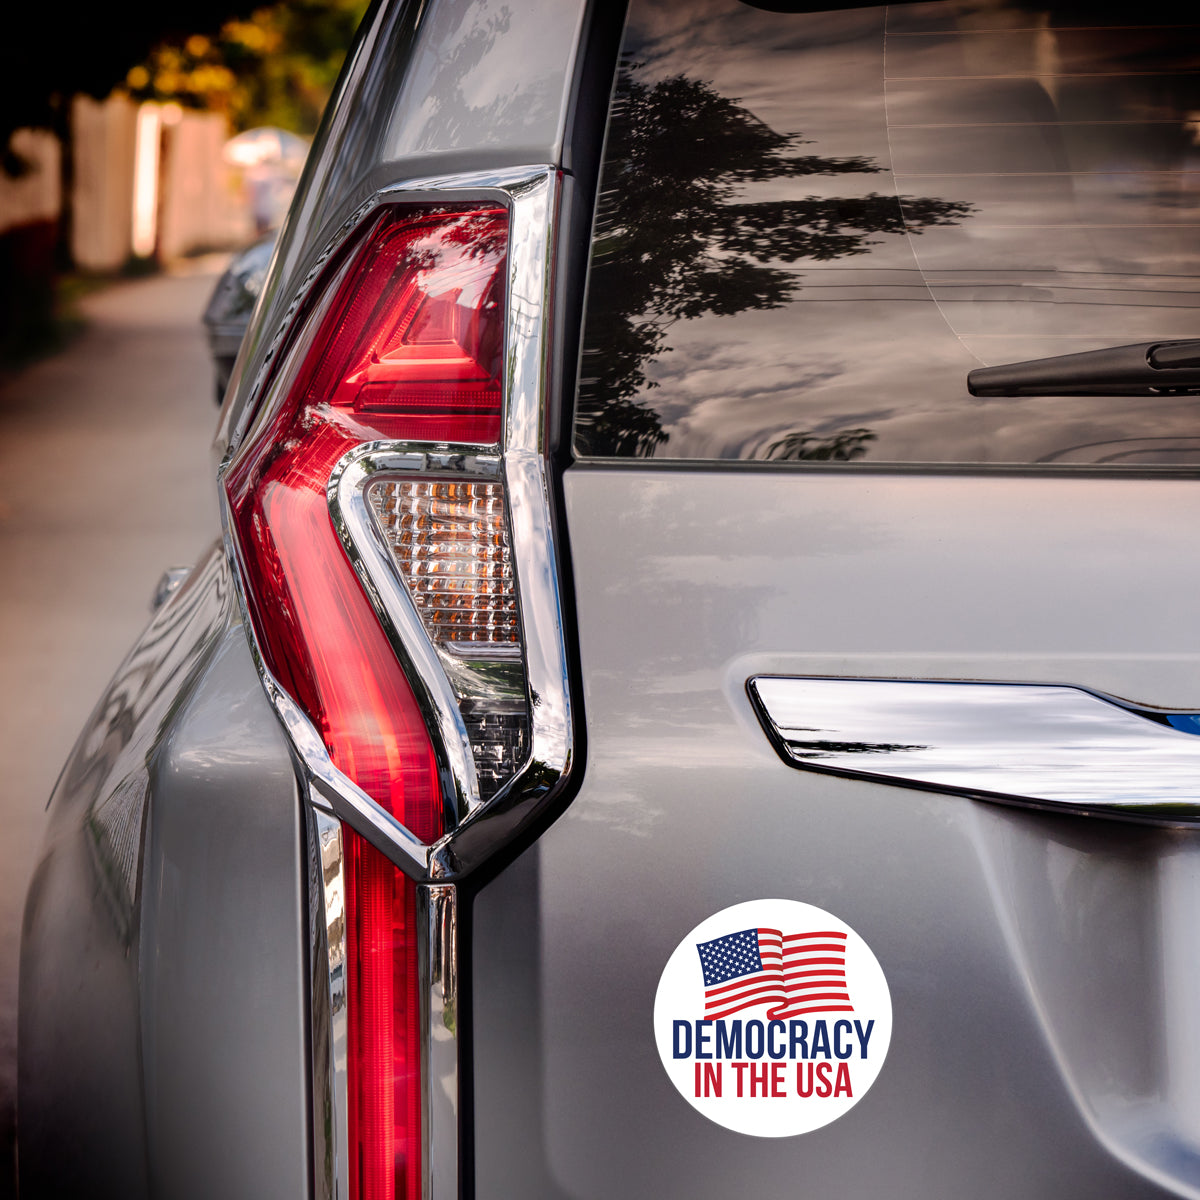 democracy in the usa car magnet on a vehicle